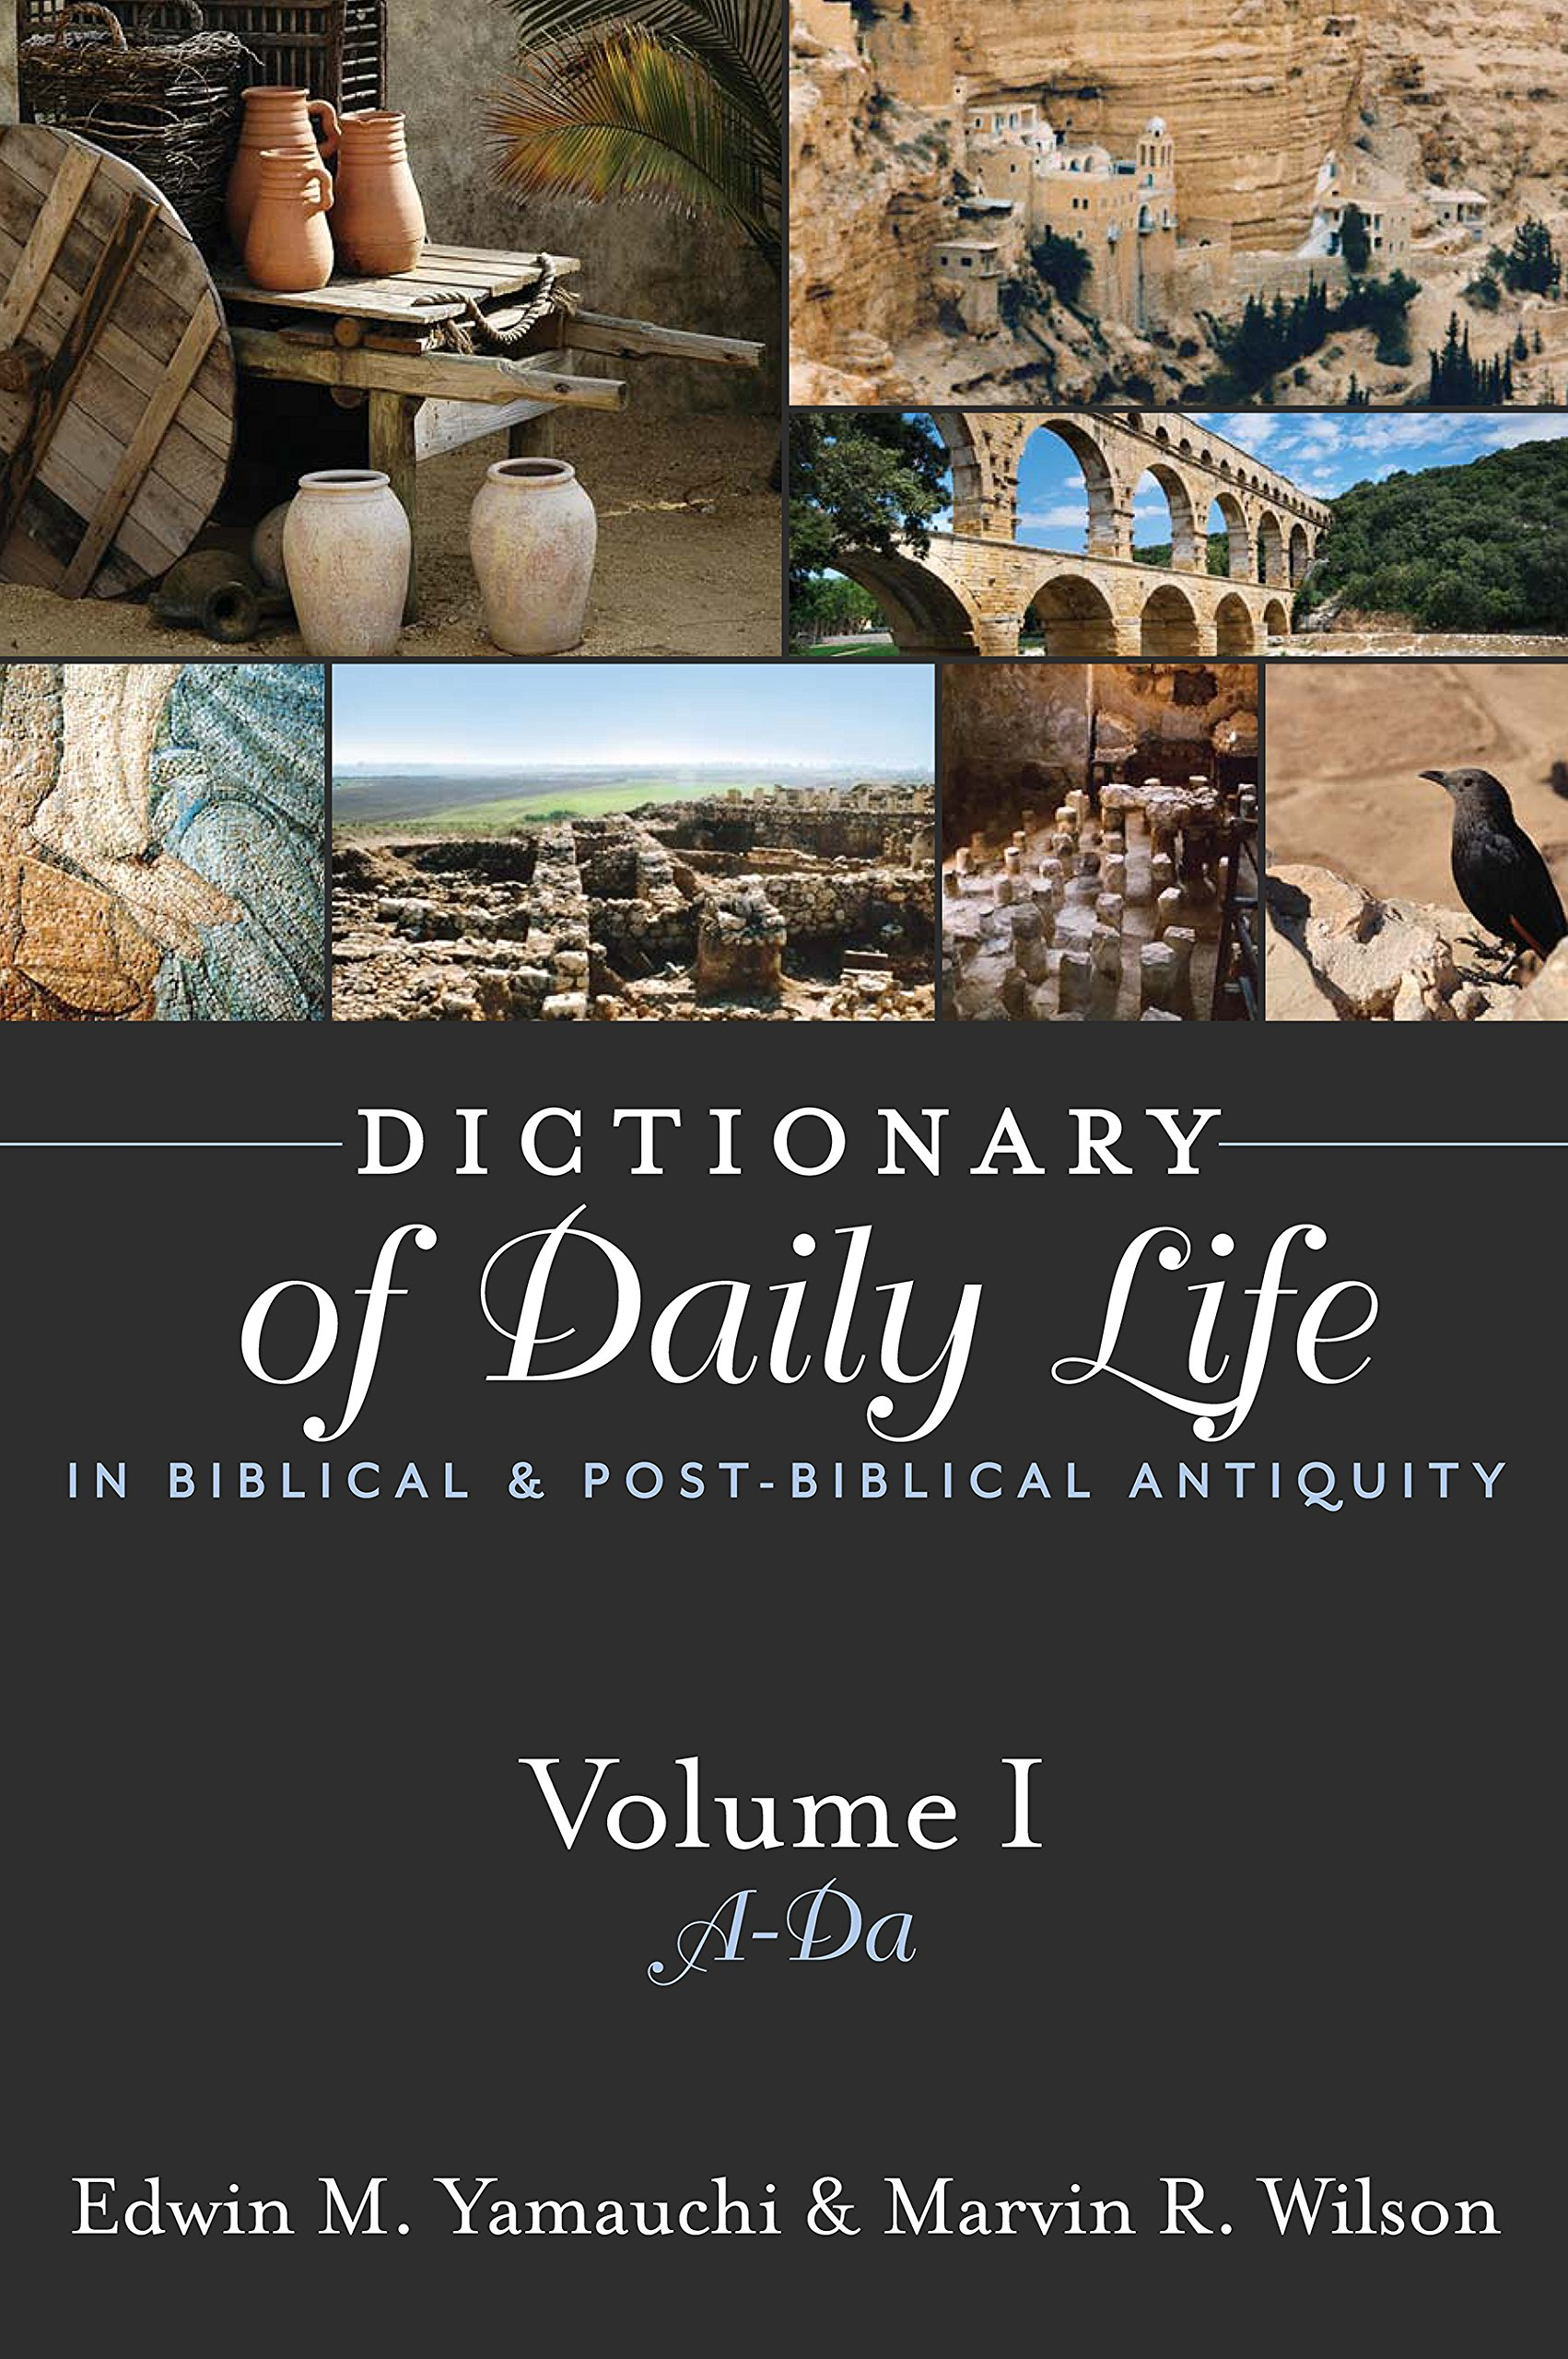 Dictionary of daily life in biblical and post biblical antiquity a dictionary of daily life in biblical and post biblical antiquity a da edwin m yamauchimarvin r wilson 9781619704602 amazon books fandeluxe Image collections